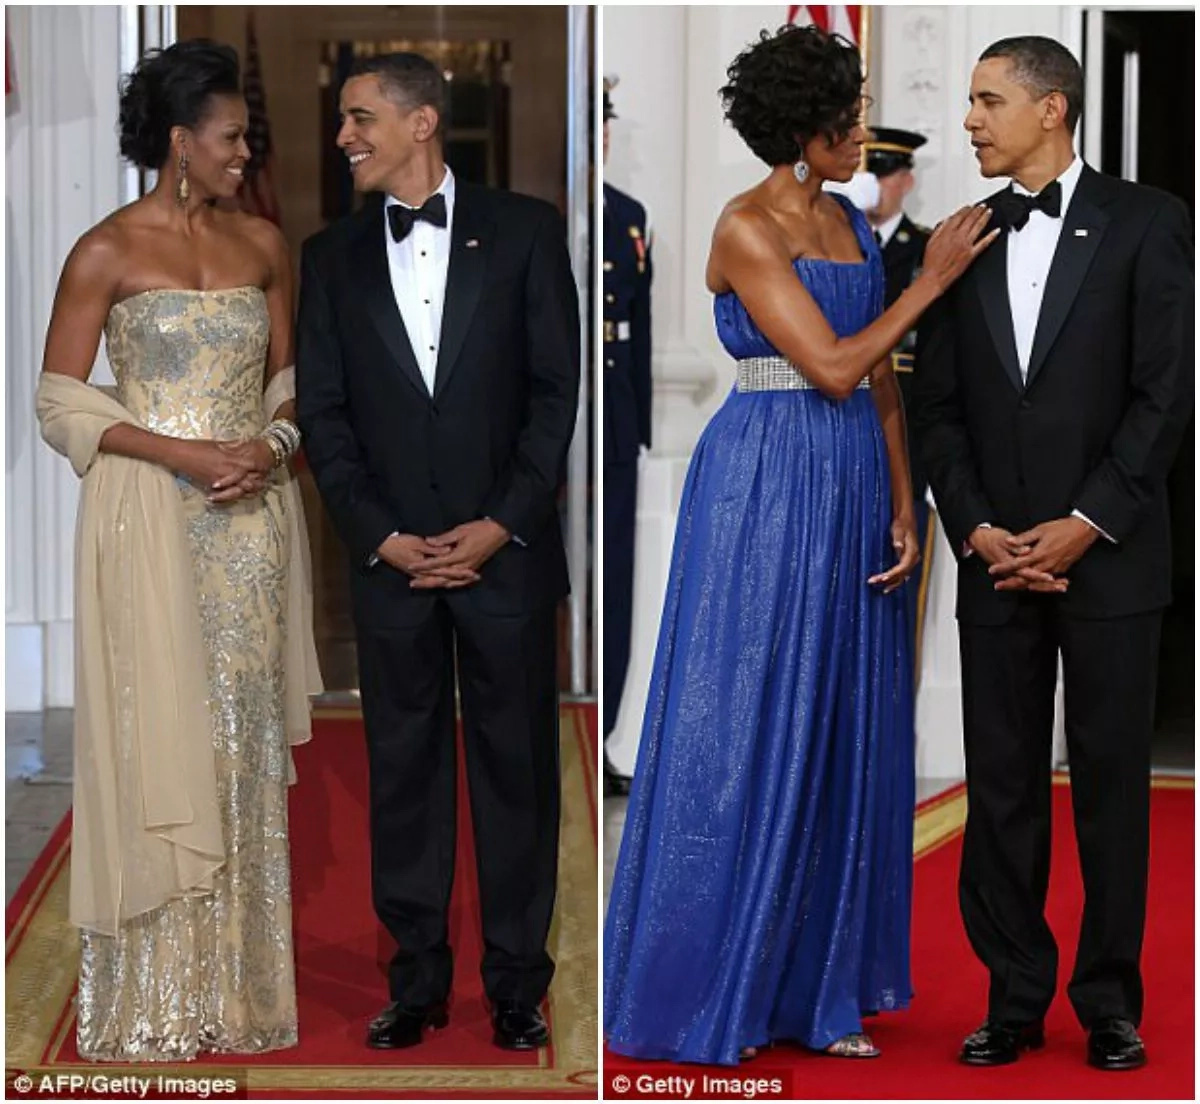 Michelle Obama said she had to choose her dresses carefully due to scrutiny, while Obama simply wore the same tuxedo and nobody noticed